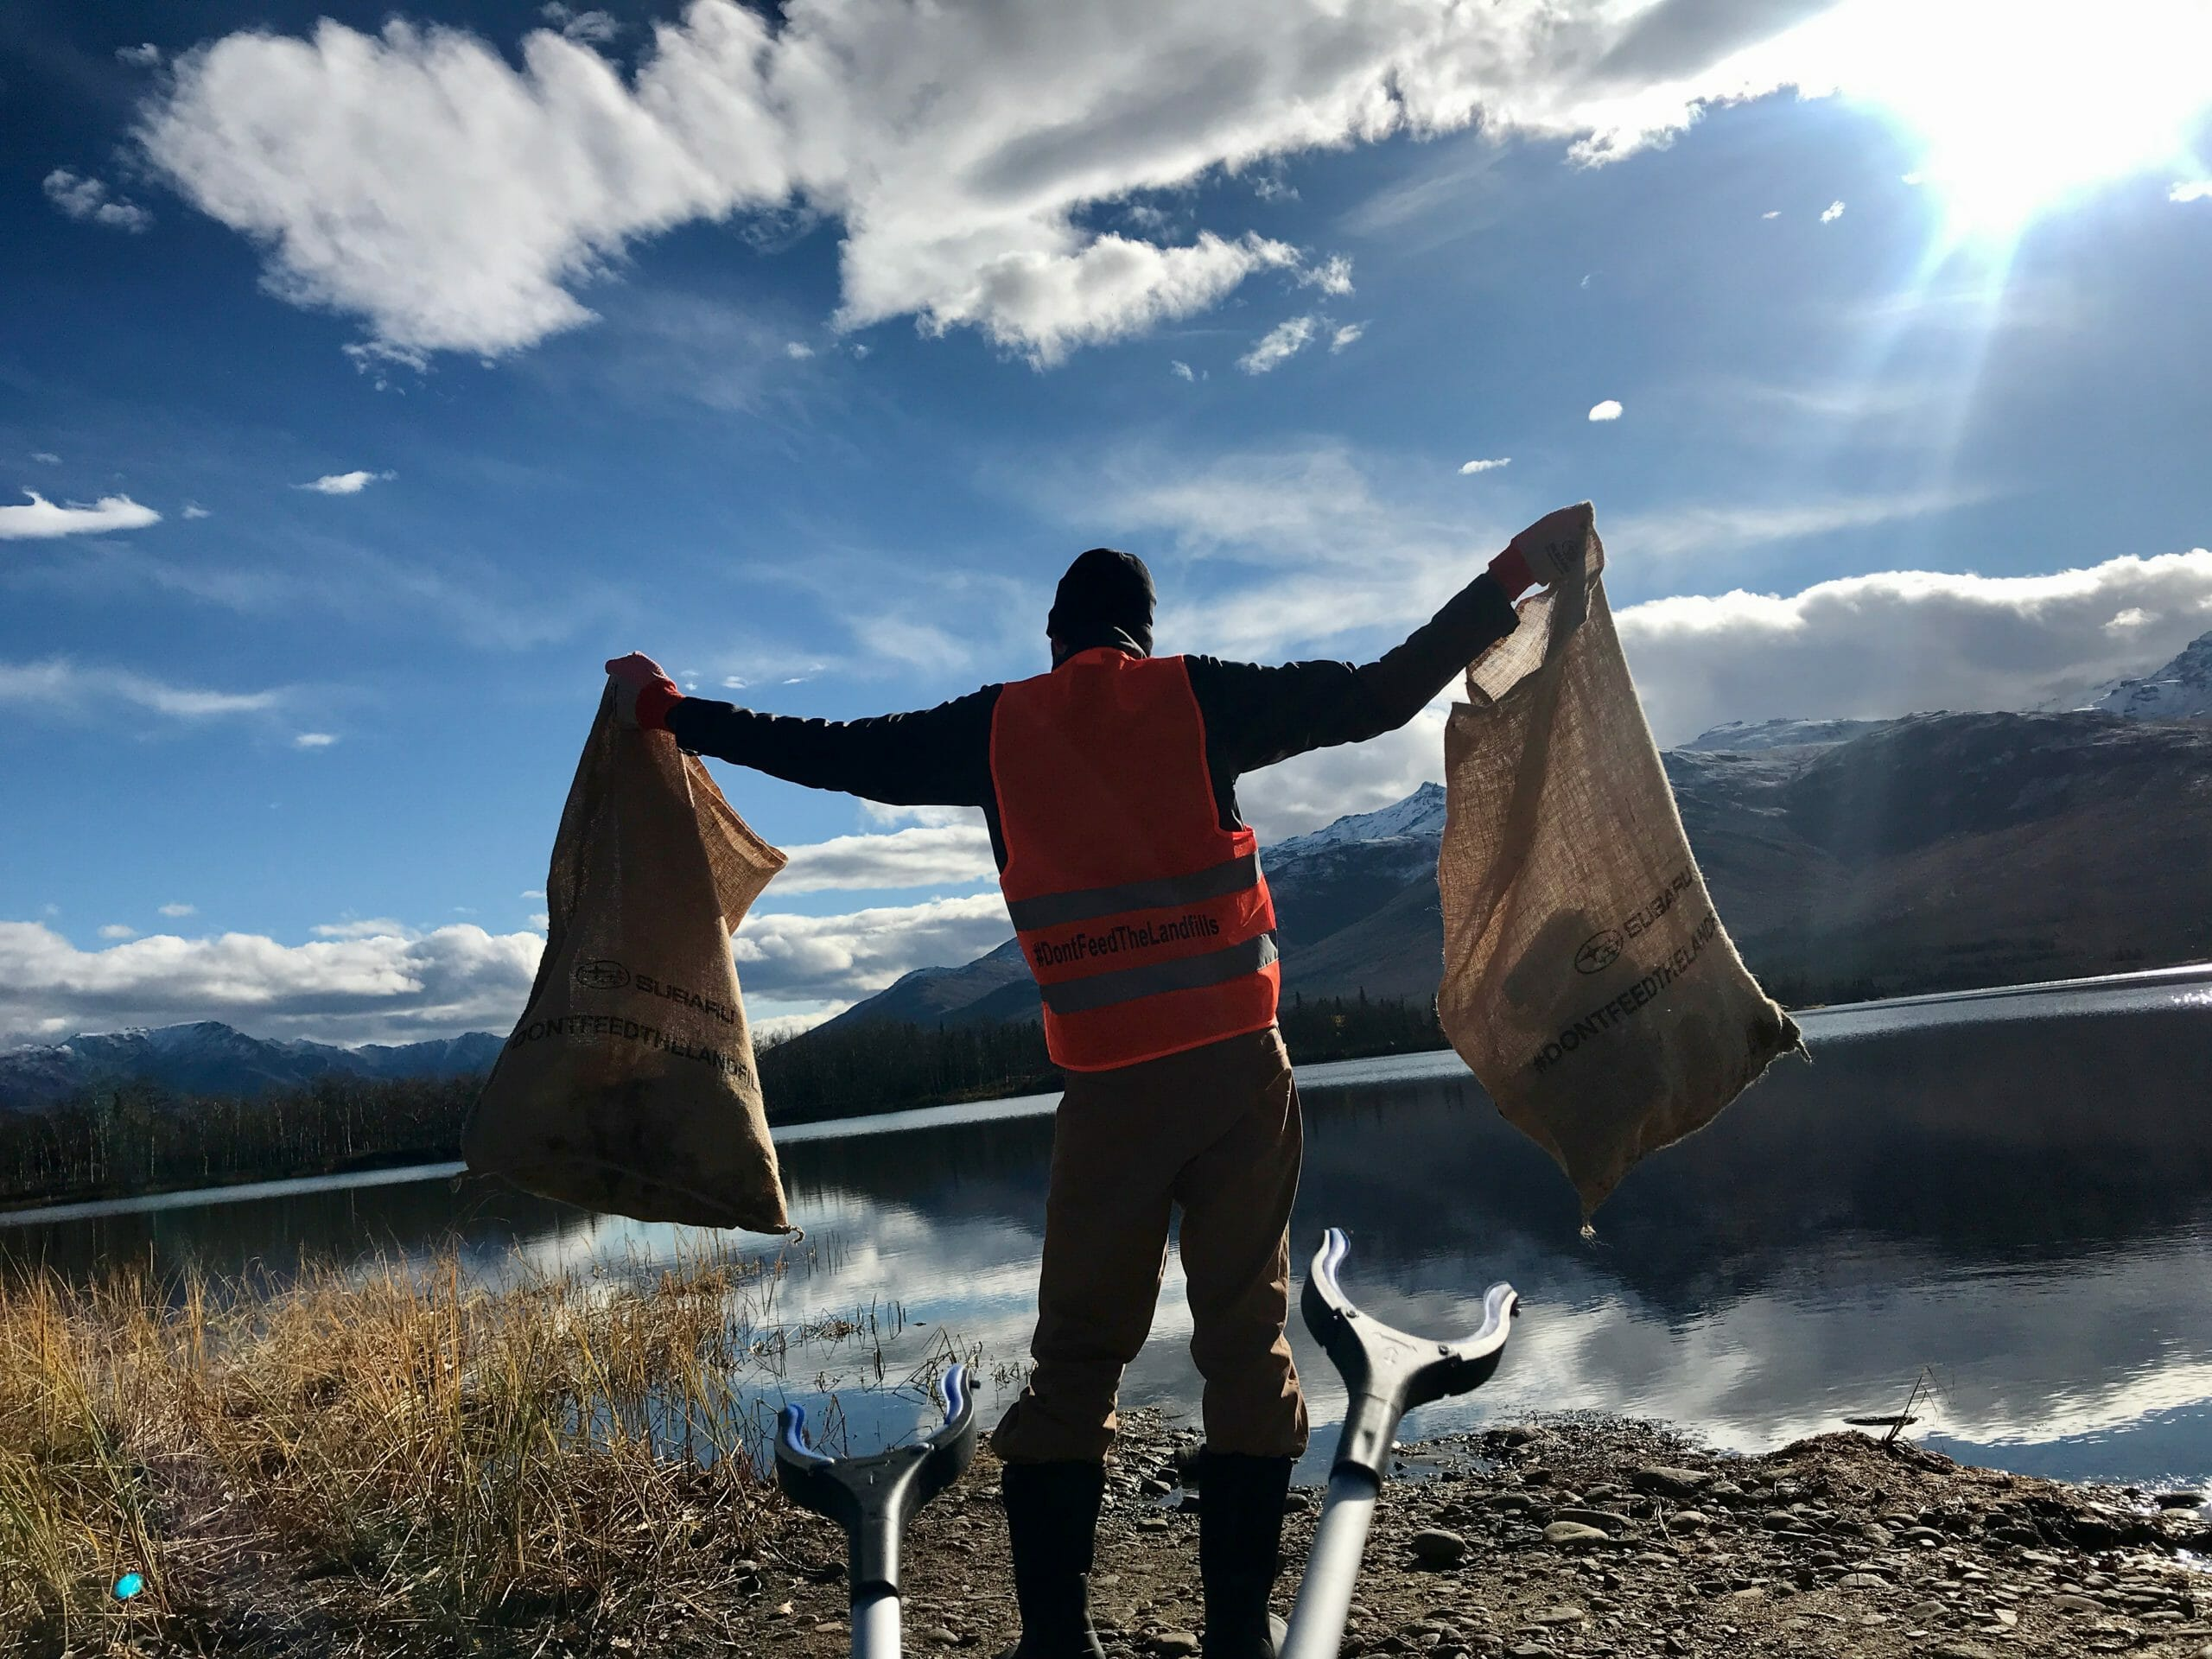 Back of man holding up two bags of trash on the shores of a lake surrounded by mountains